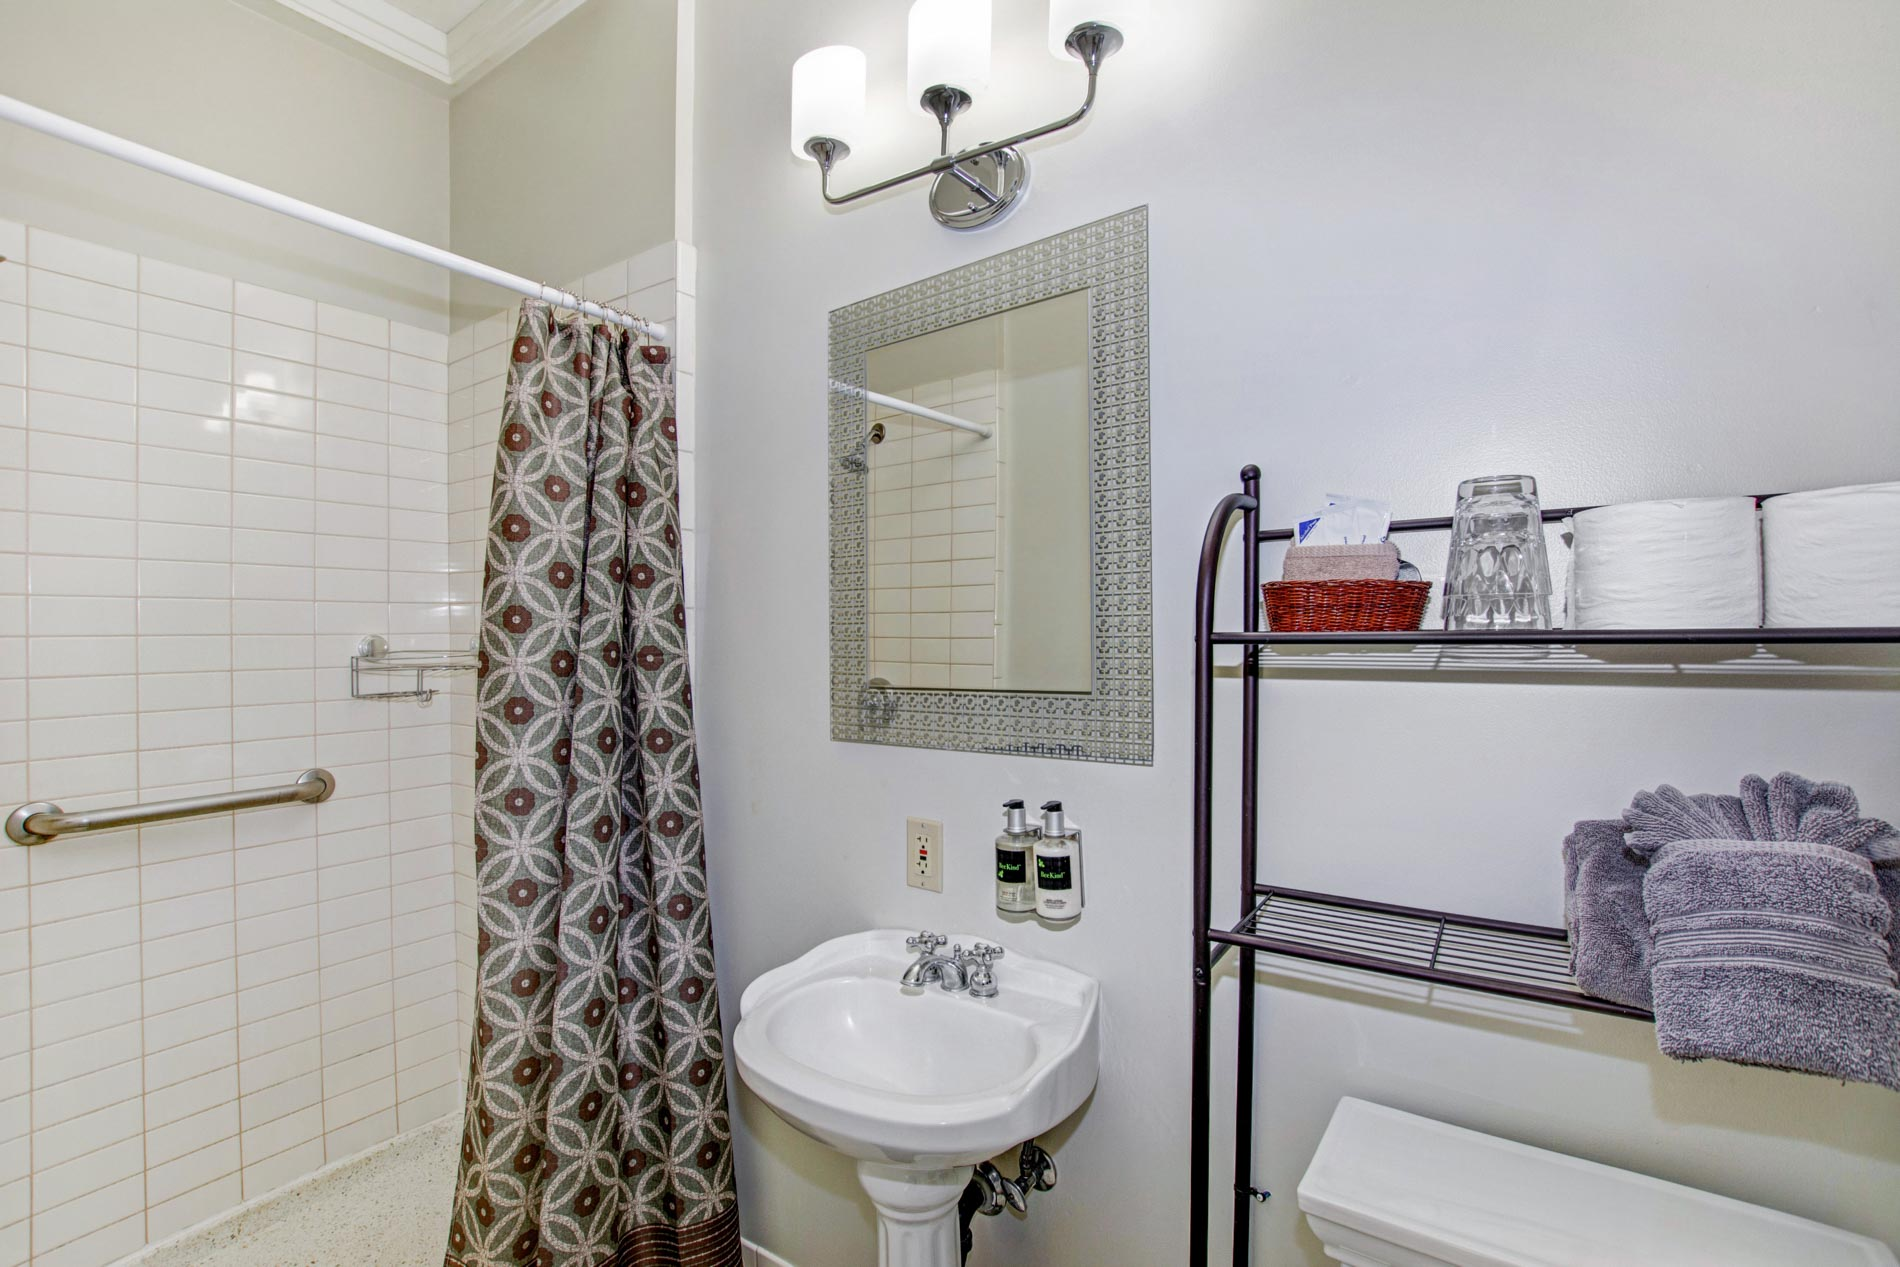 Casa Bella bathroom and shower with pedestal sink